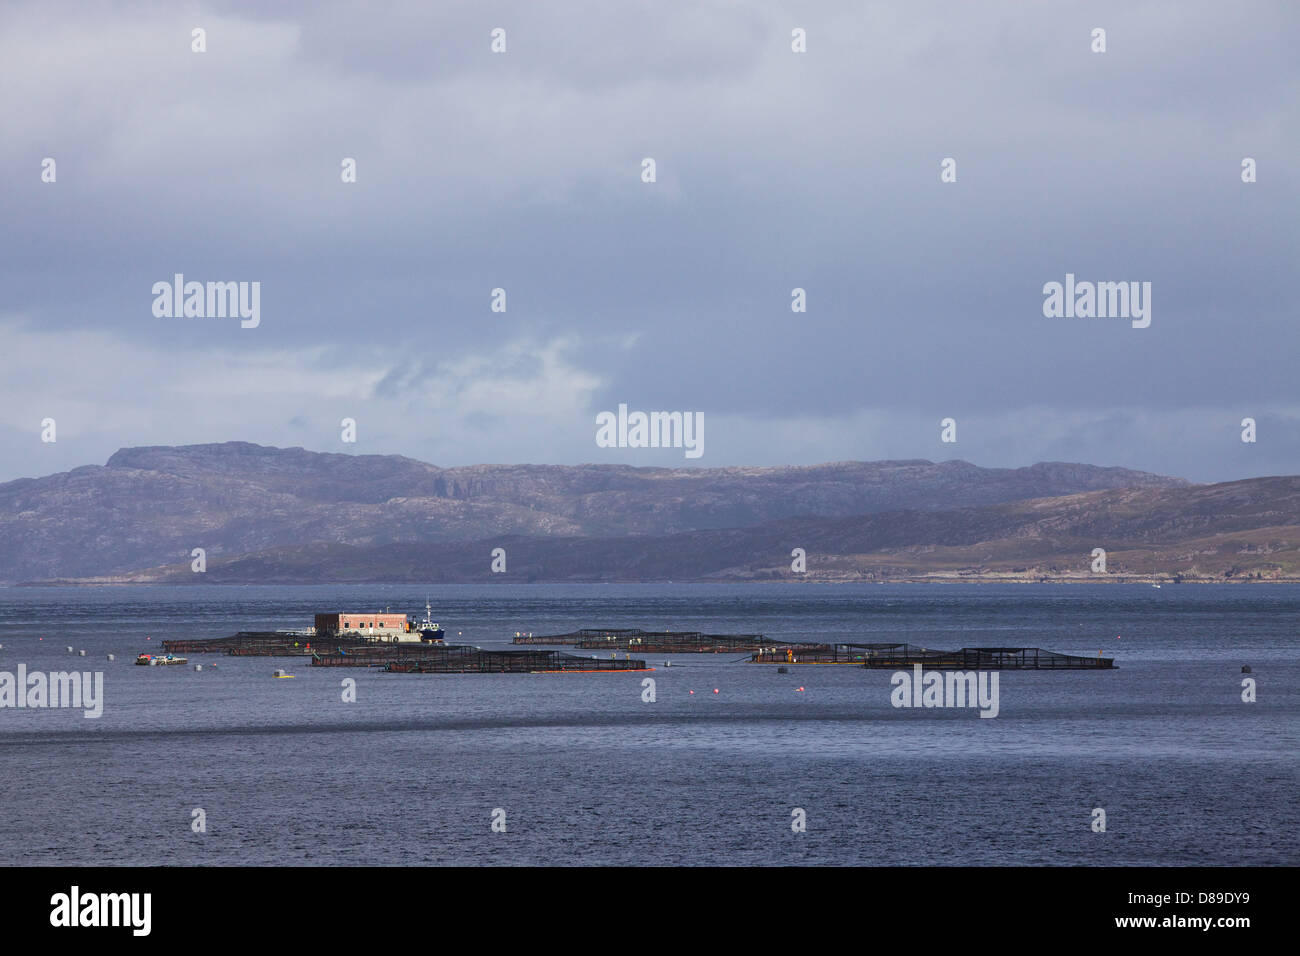 Salmon fishing in ten 32 metre cages owned by the Scottish Salmon Company. Portree Bay, Isle of Skye, Inner Hebrides, - Stock Image